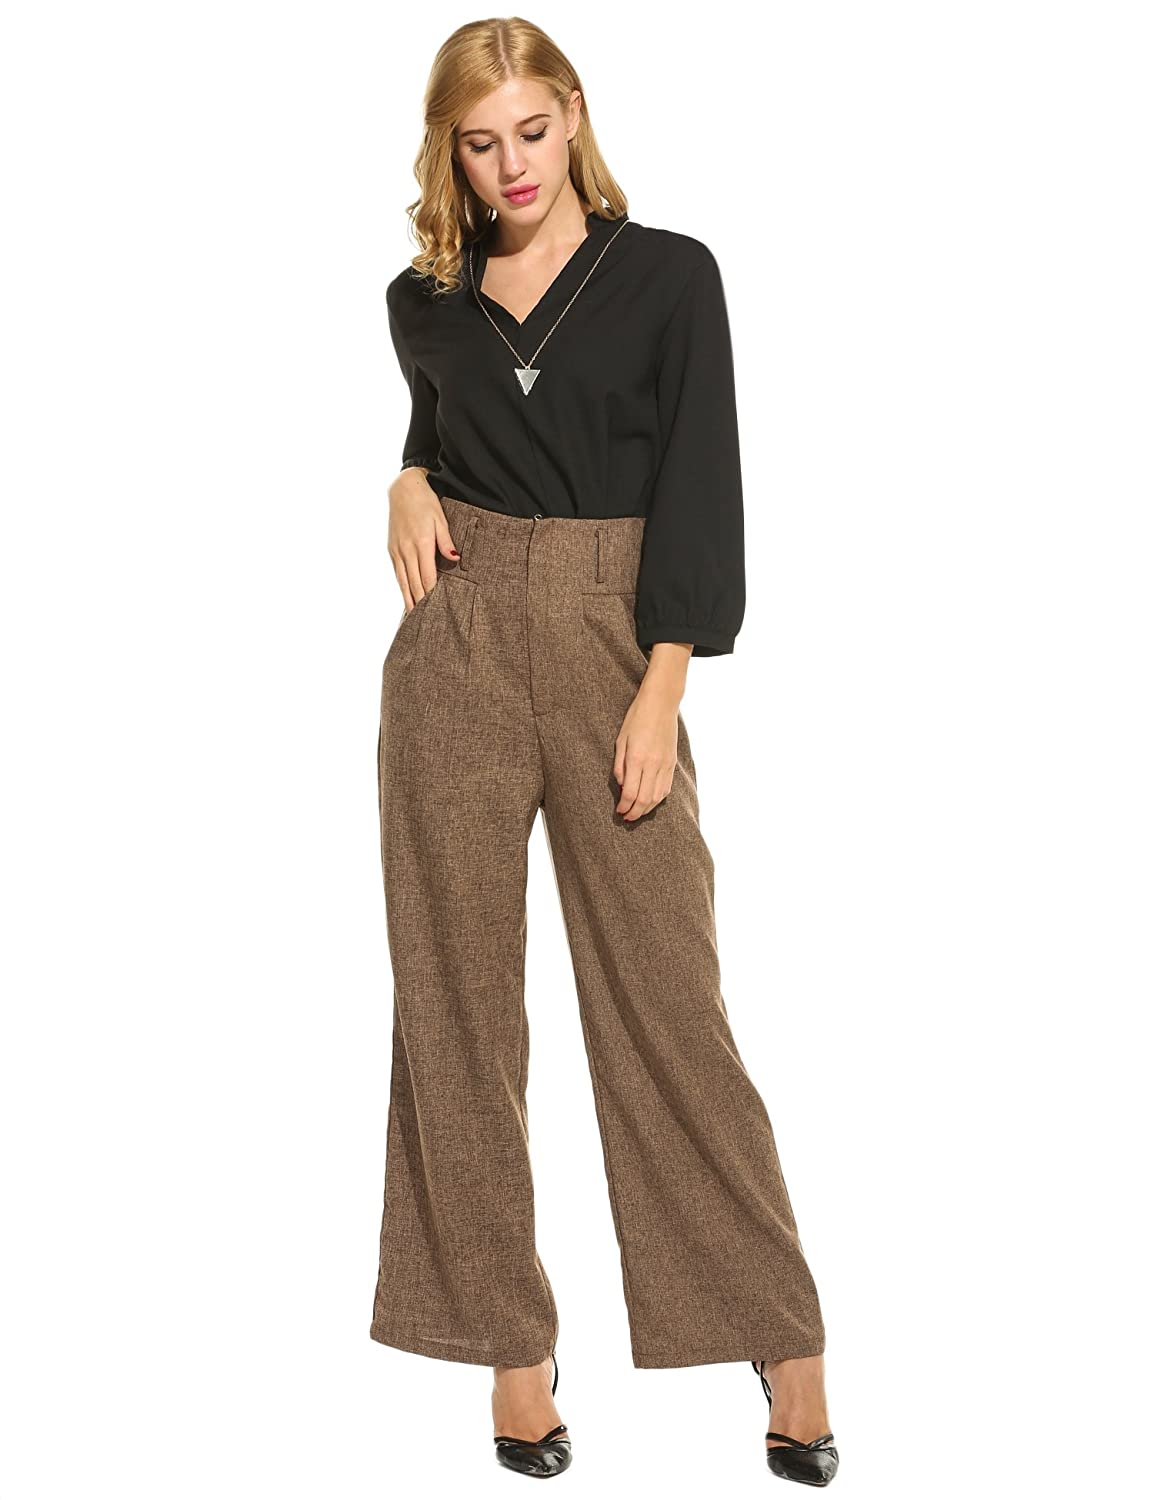 Swing Dance Dresses | Lindy Hop Dresses & Clothing Zeagoo Women Casual Superline Wide Flare Leg High Waist Zipper Solid Long Pants $25.99 AT vintagedancer.com